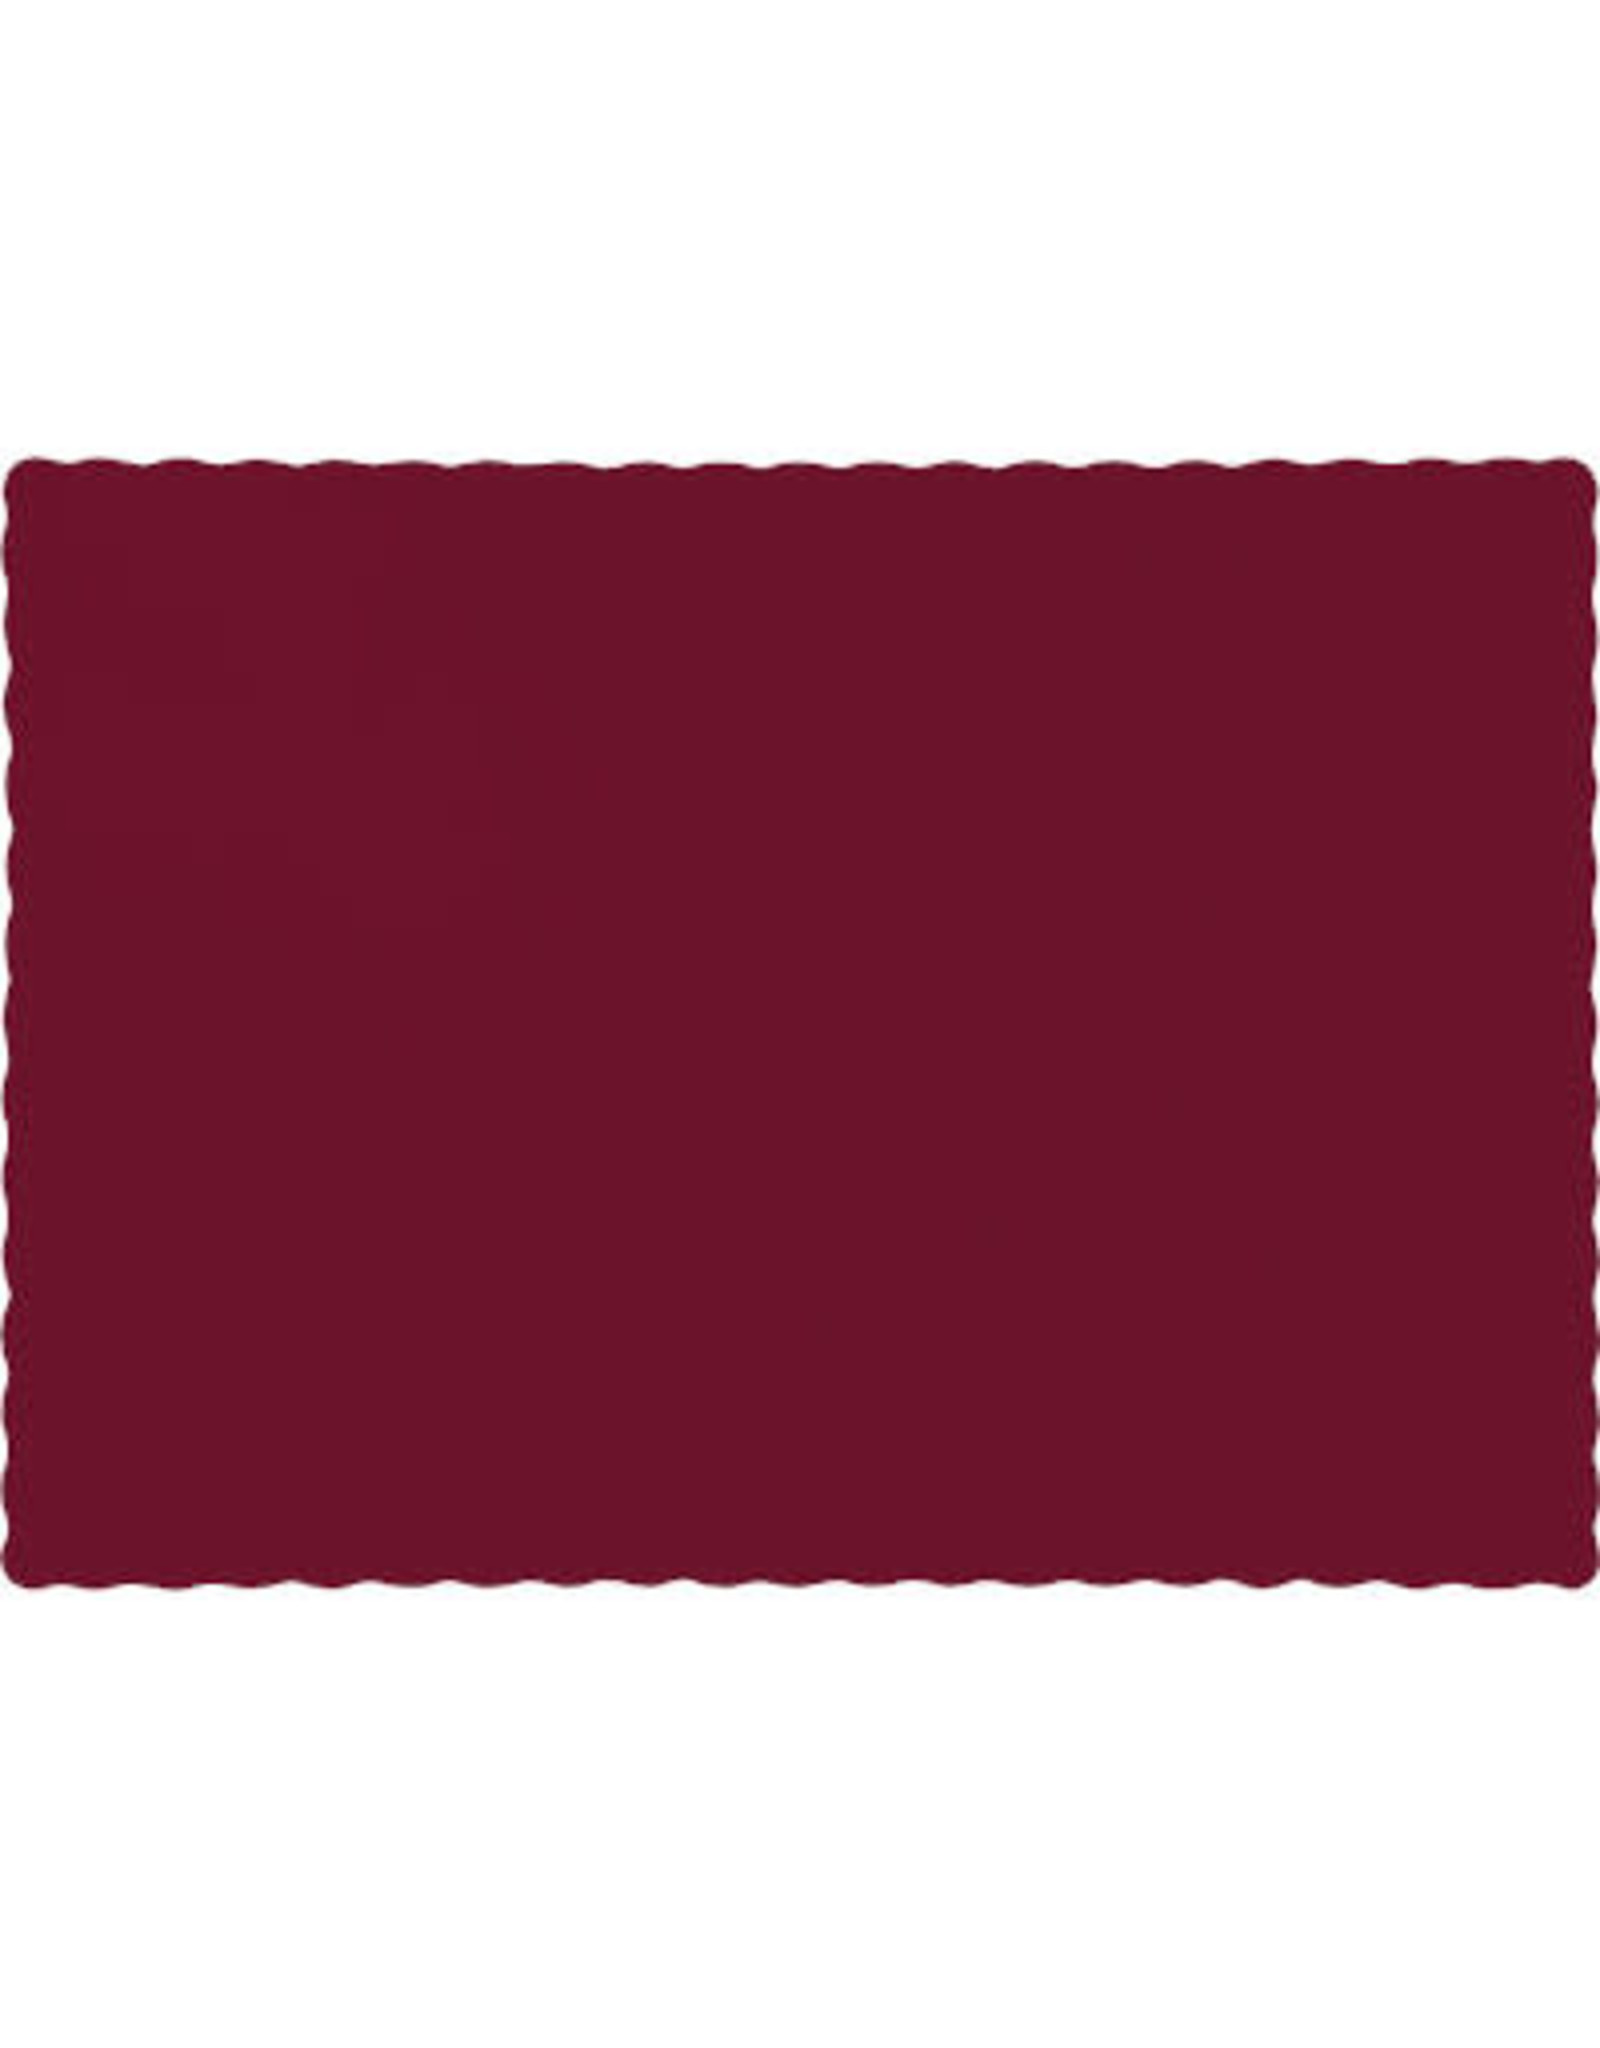 Touch of Color BURGUNDY RED PLACEMATS